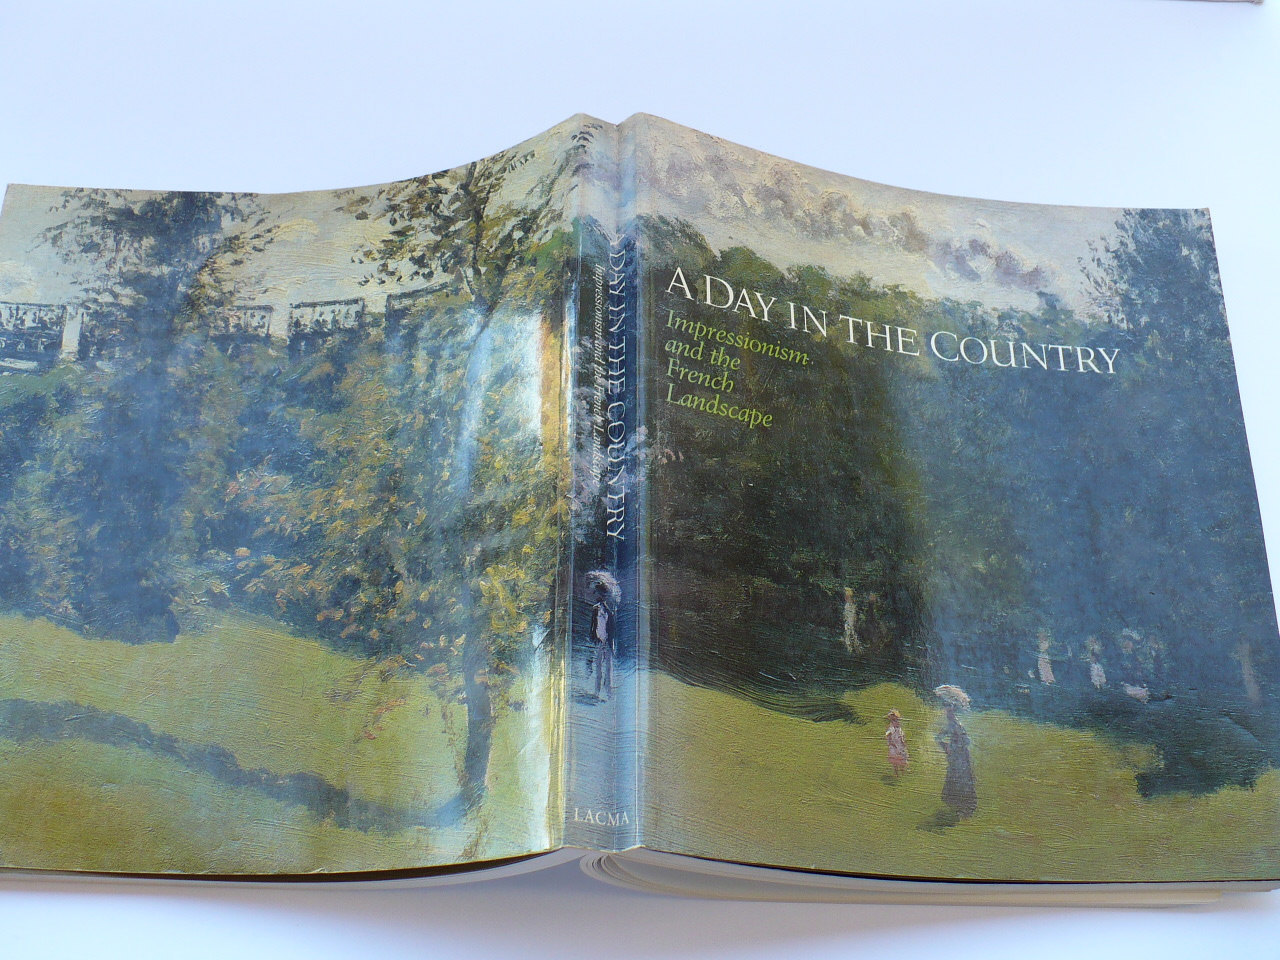 Art Book, A Day in the Country, Impressionism, French Landscape, Books, Art & Ph